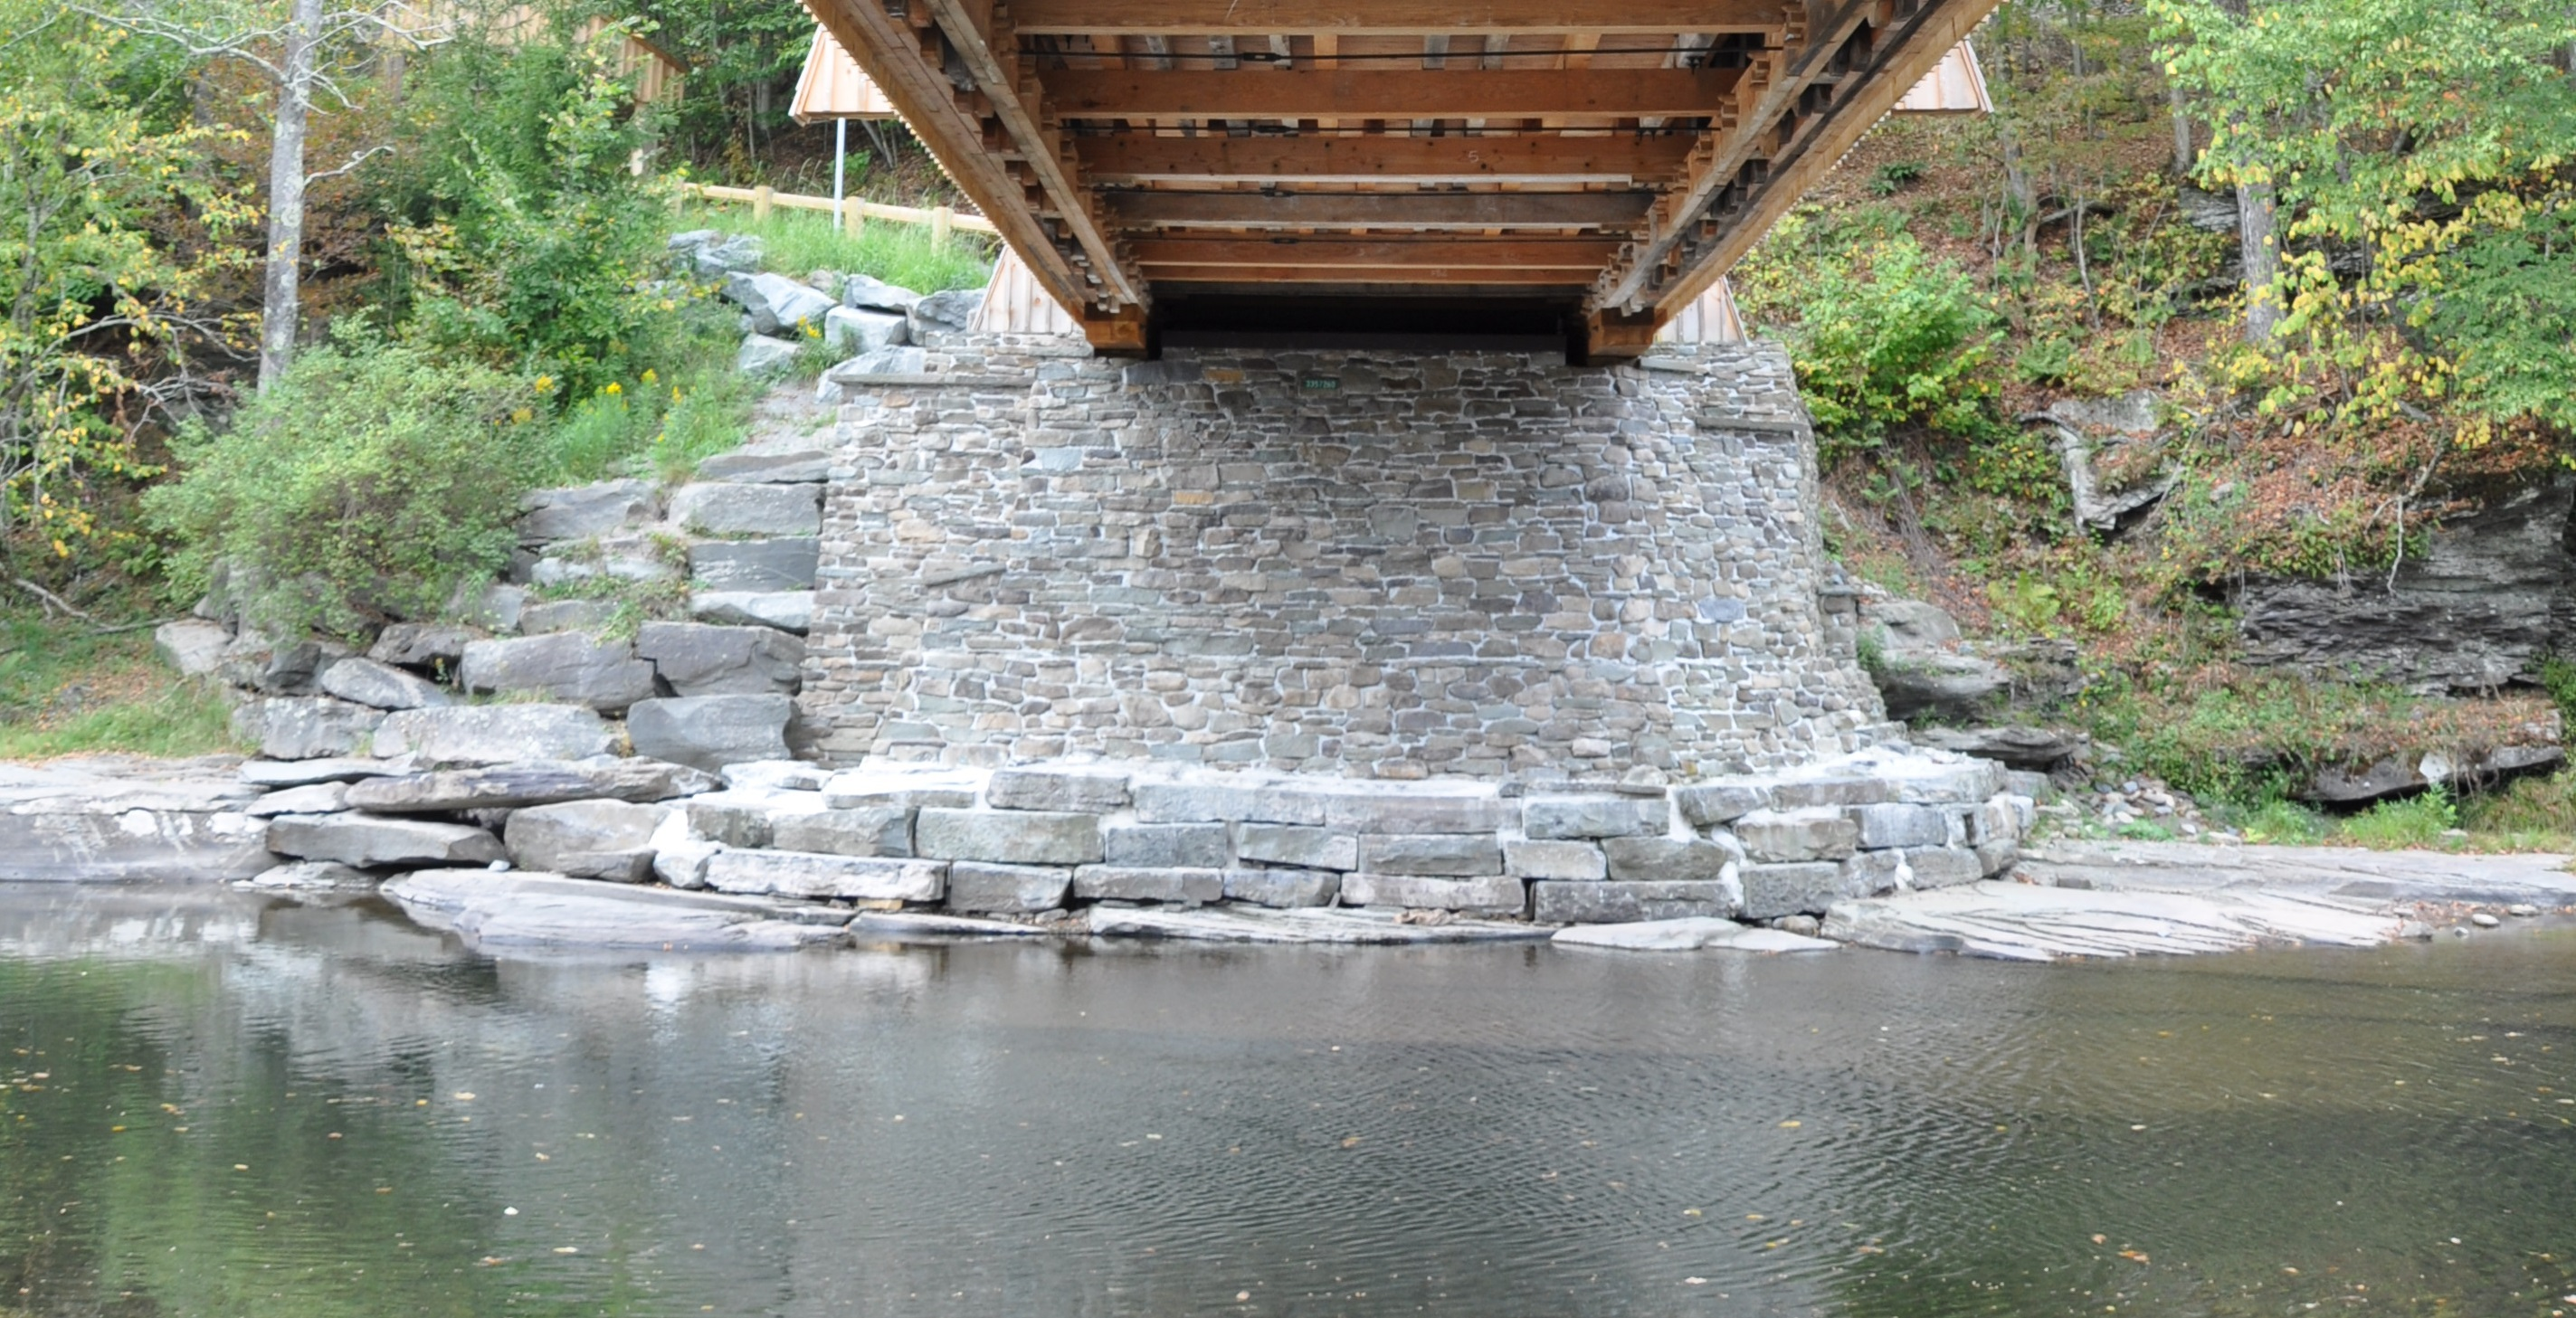 Stone-clad ramps and piers are part of the restoration of the historic Beaverkill Covered Bridge.